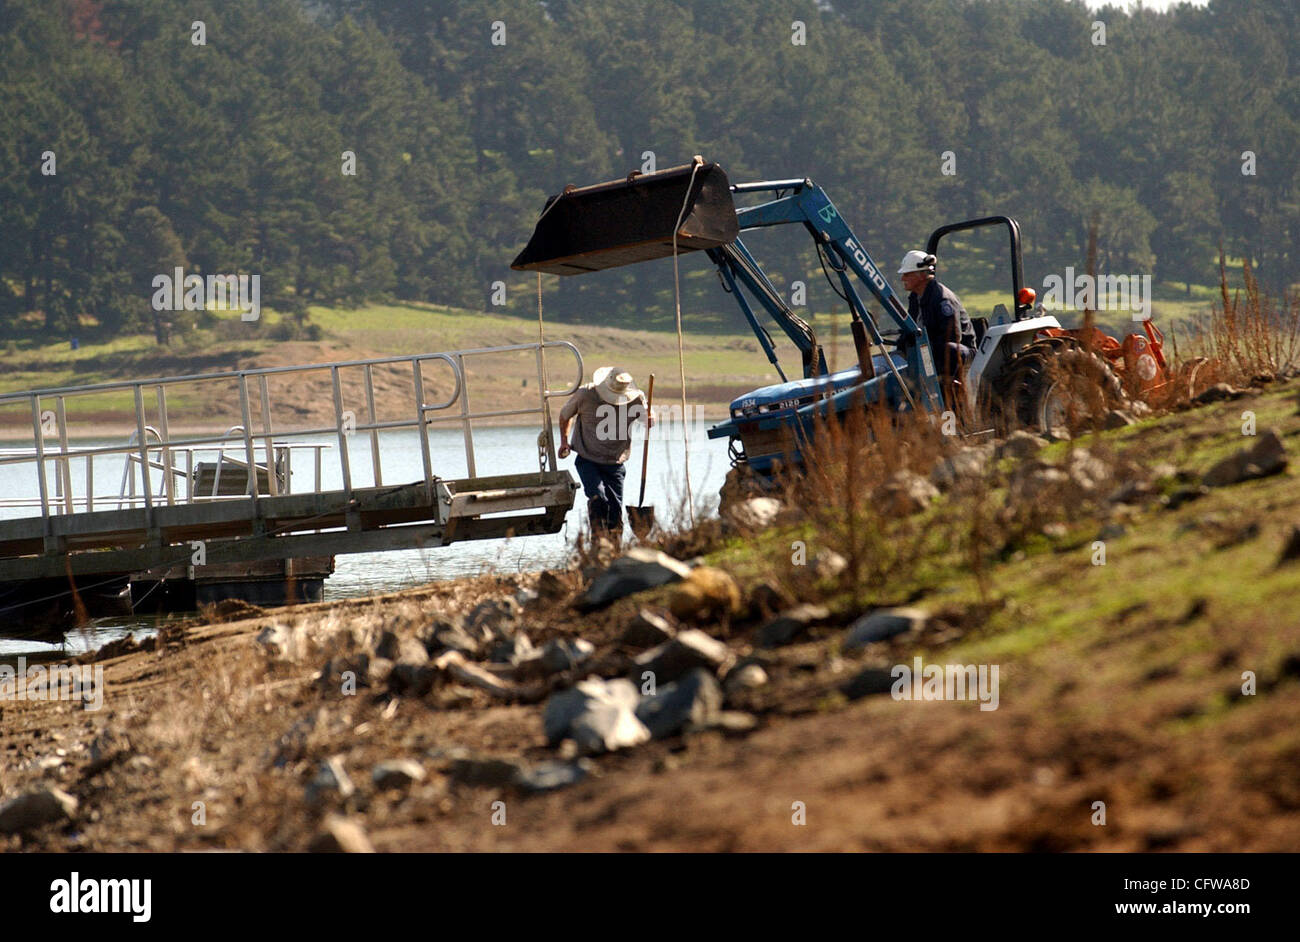 The San Pablo Reservoir in San Pablo, Calif., gets spruced up on Wednesday, Feb. 14, 2007, in preparation for Friday's - Stock Image